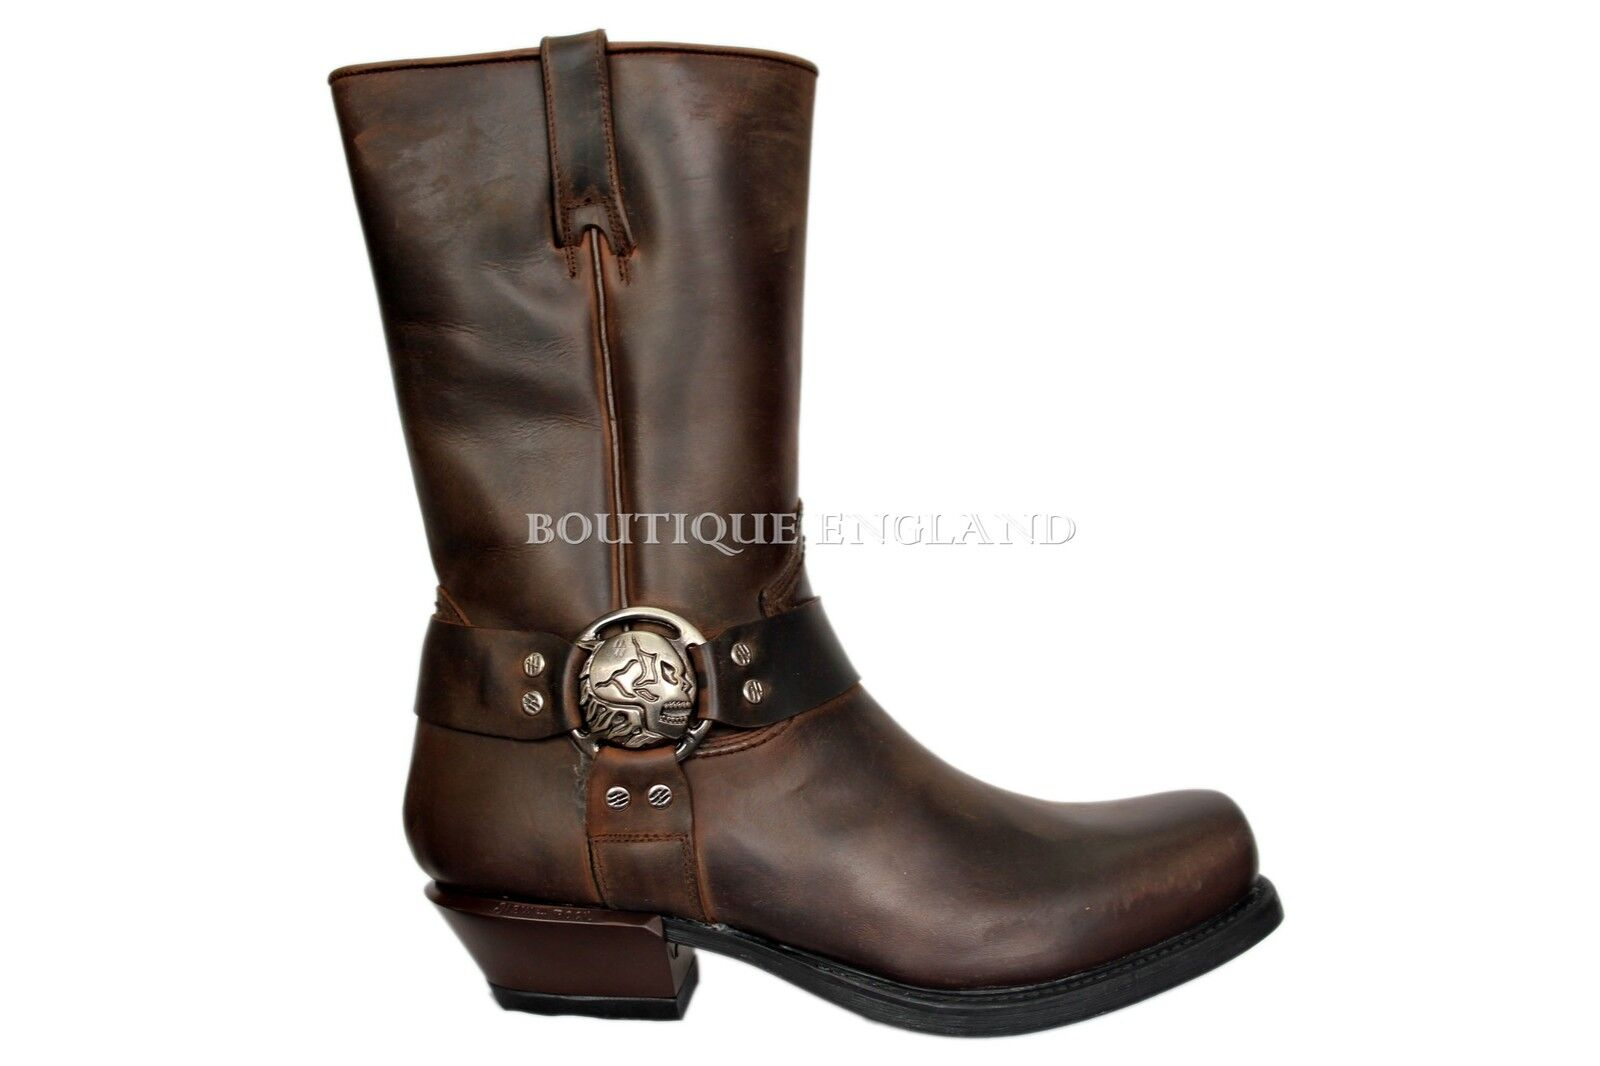 NEWROCK New Rock M.7965 Brown Western Cowboy Gothic Biker Leather Boots shoes